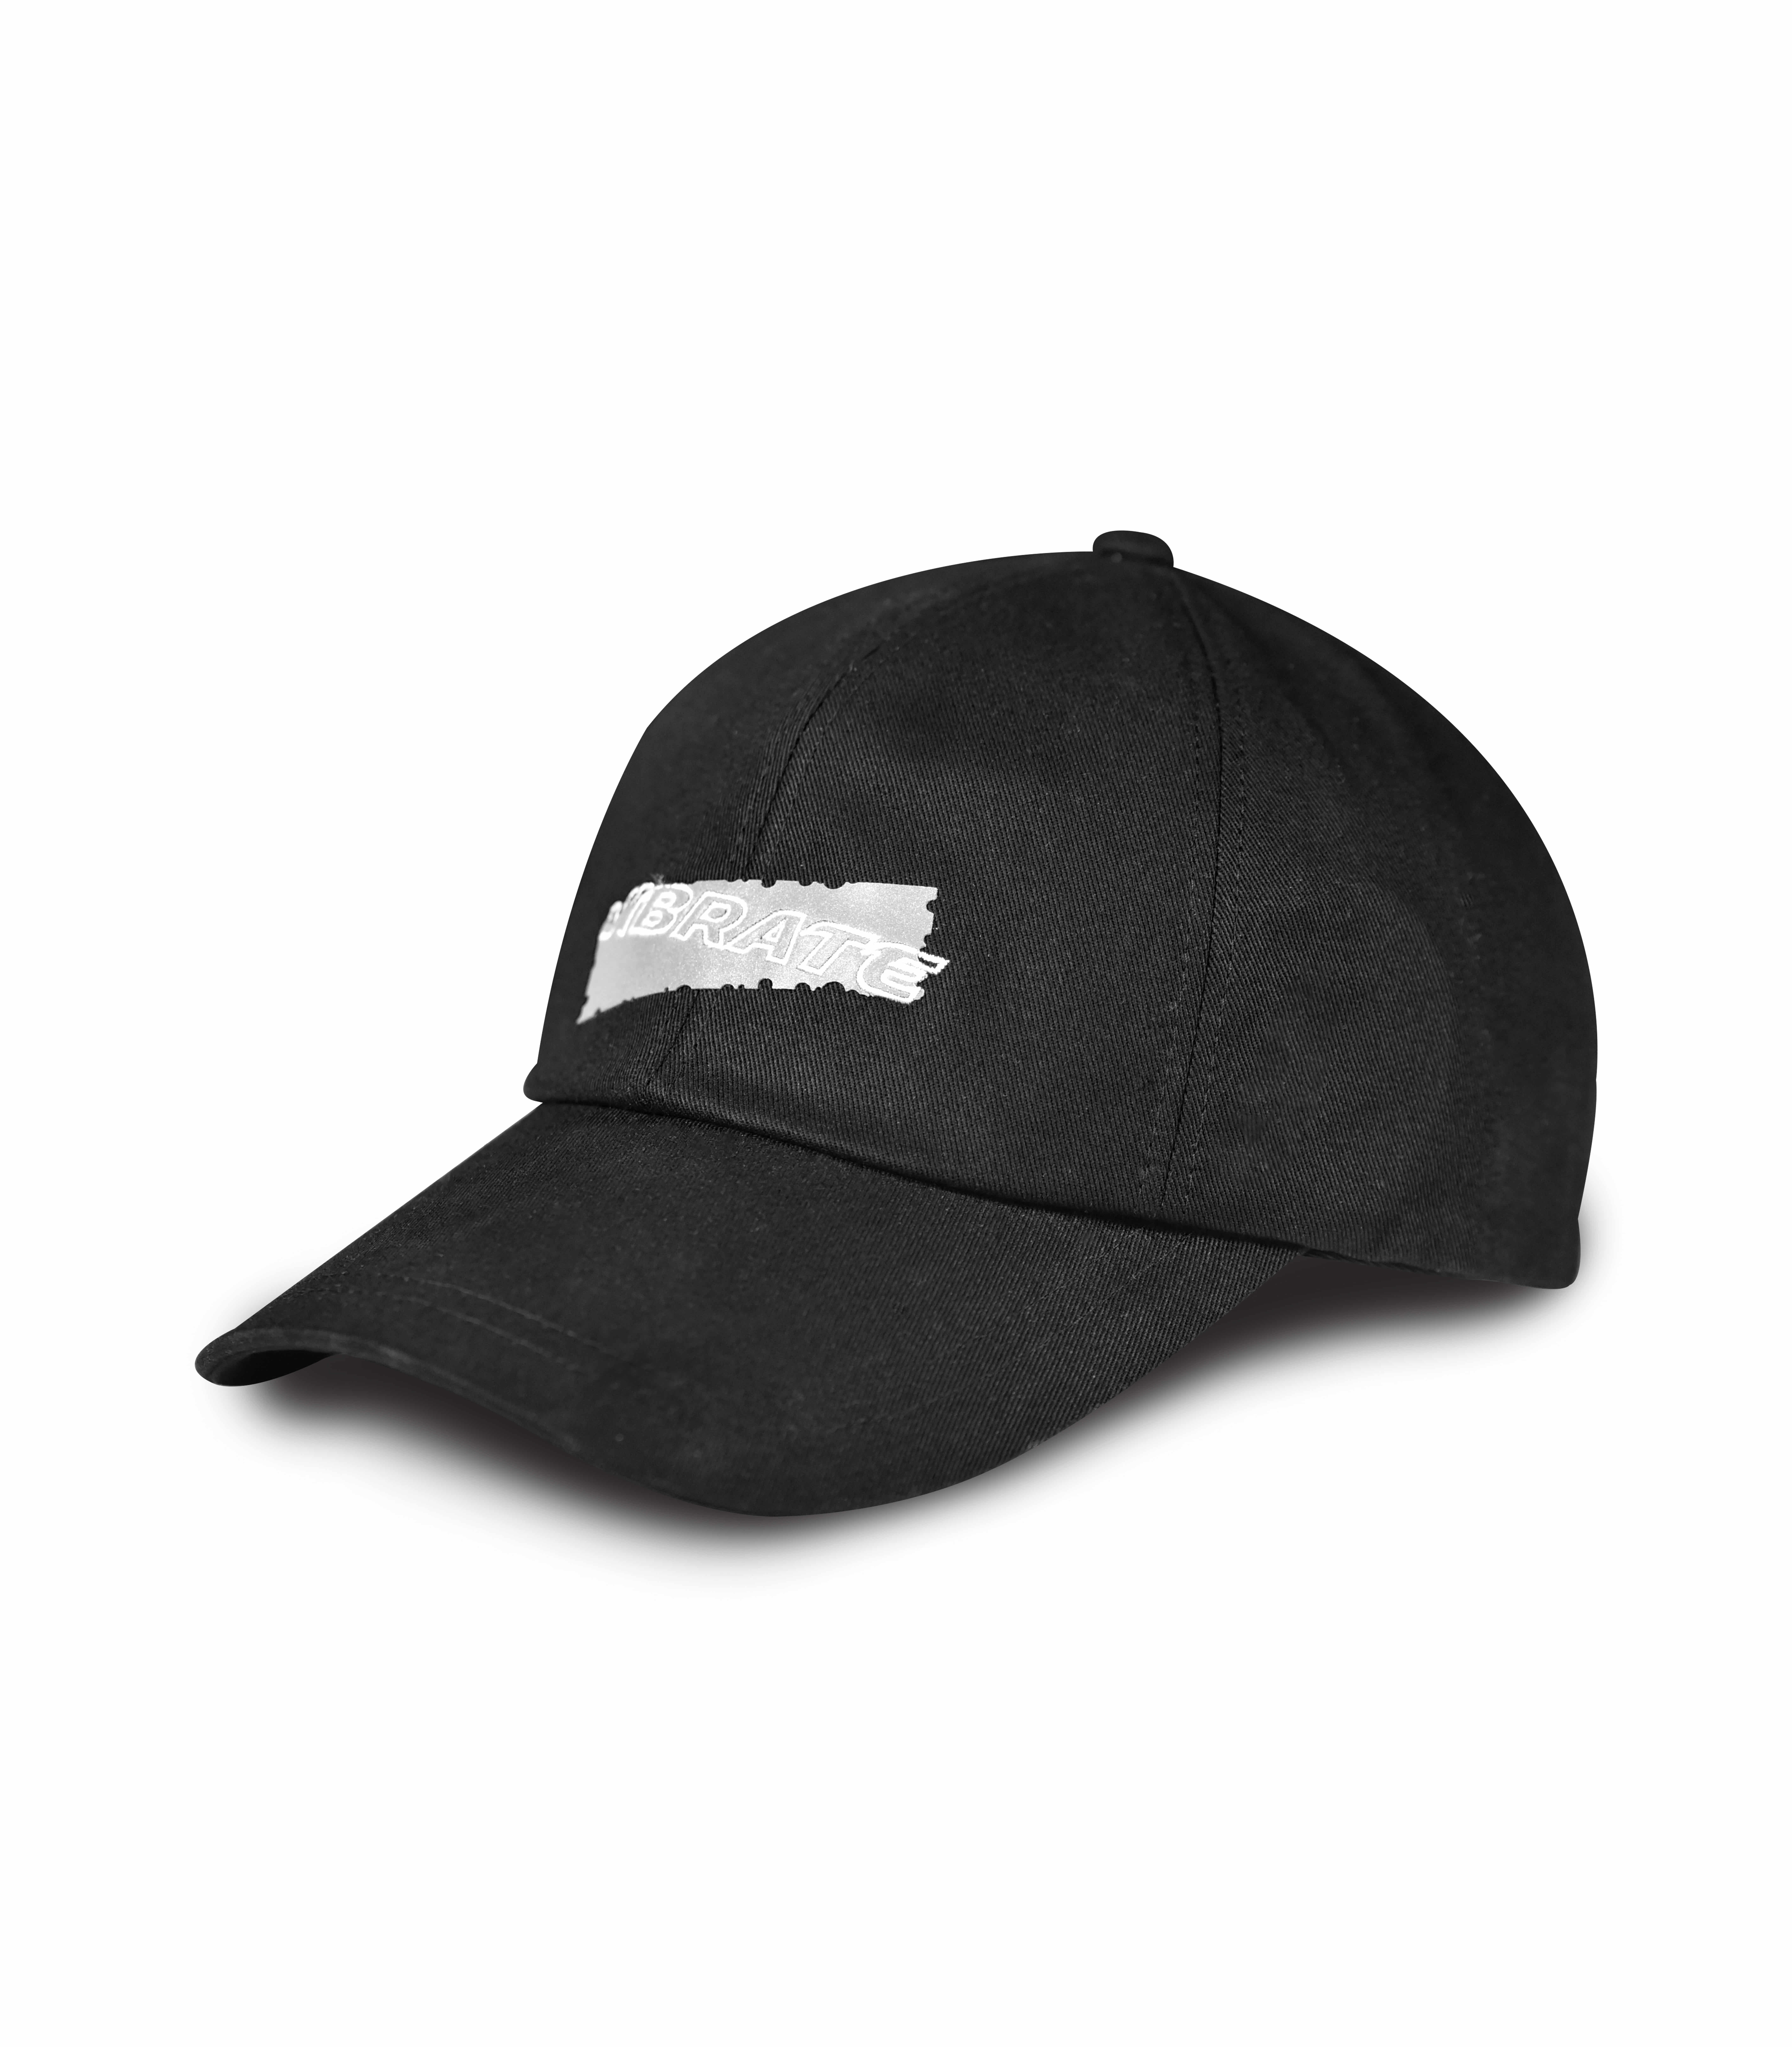 SCOTCH BALL CAP (BLACK)